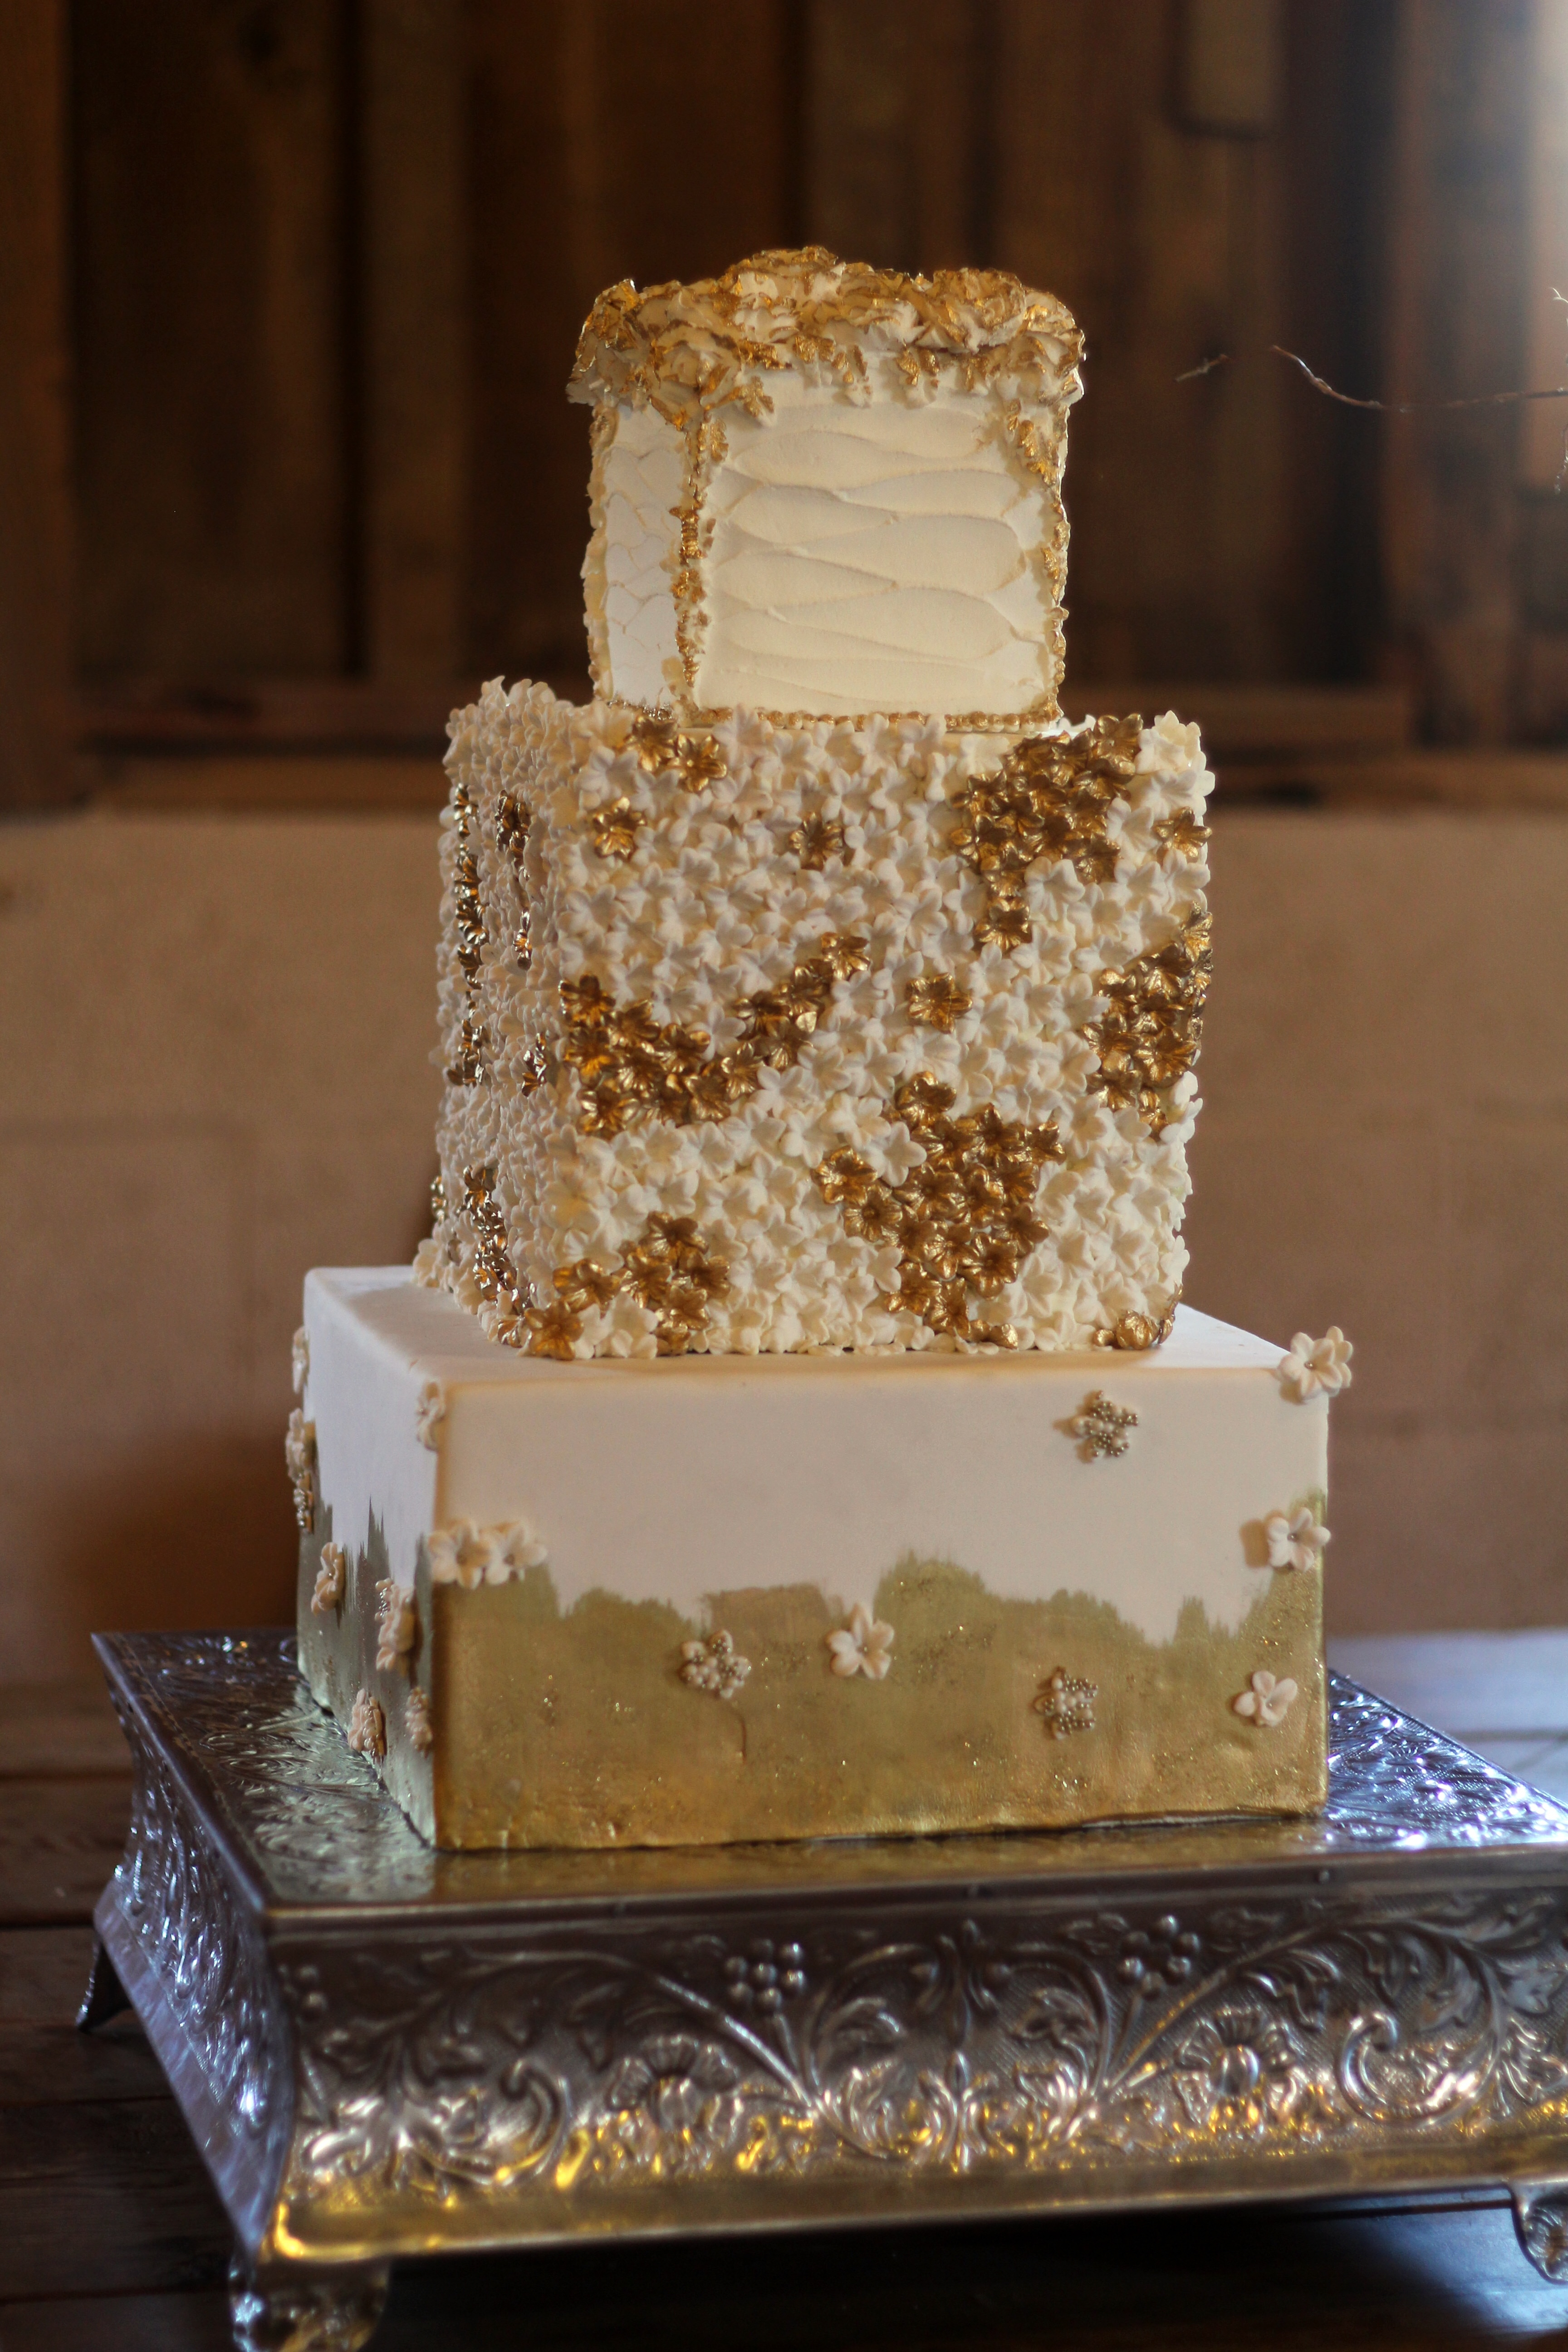 Square 3 Tier Wedding Cake In Gold And Ivory With Hundreds